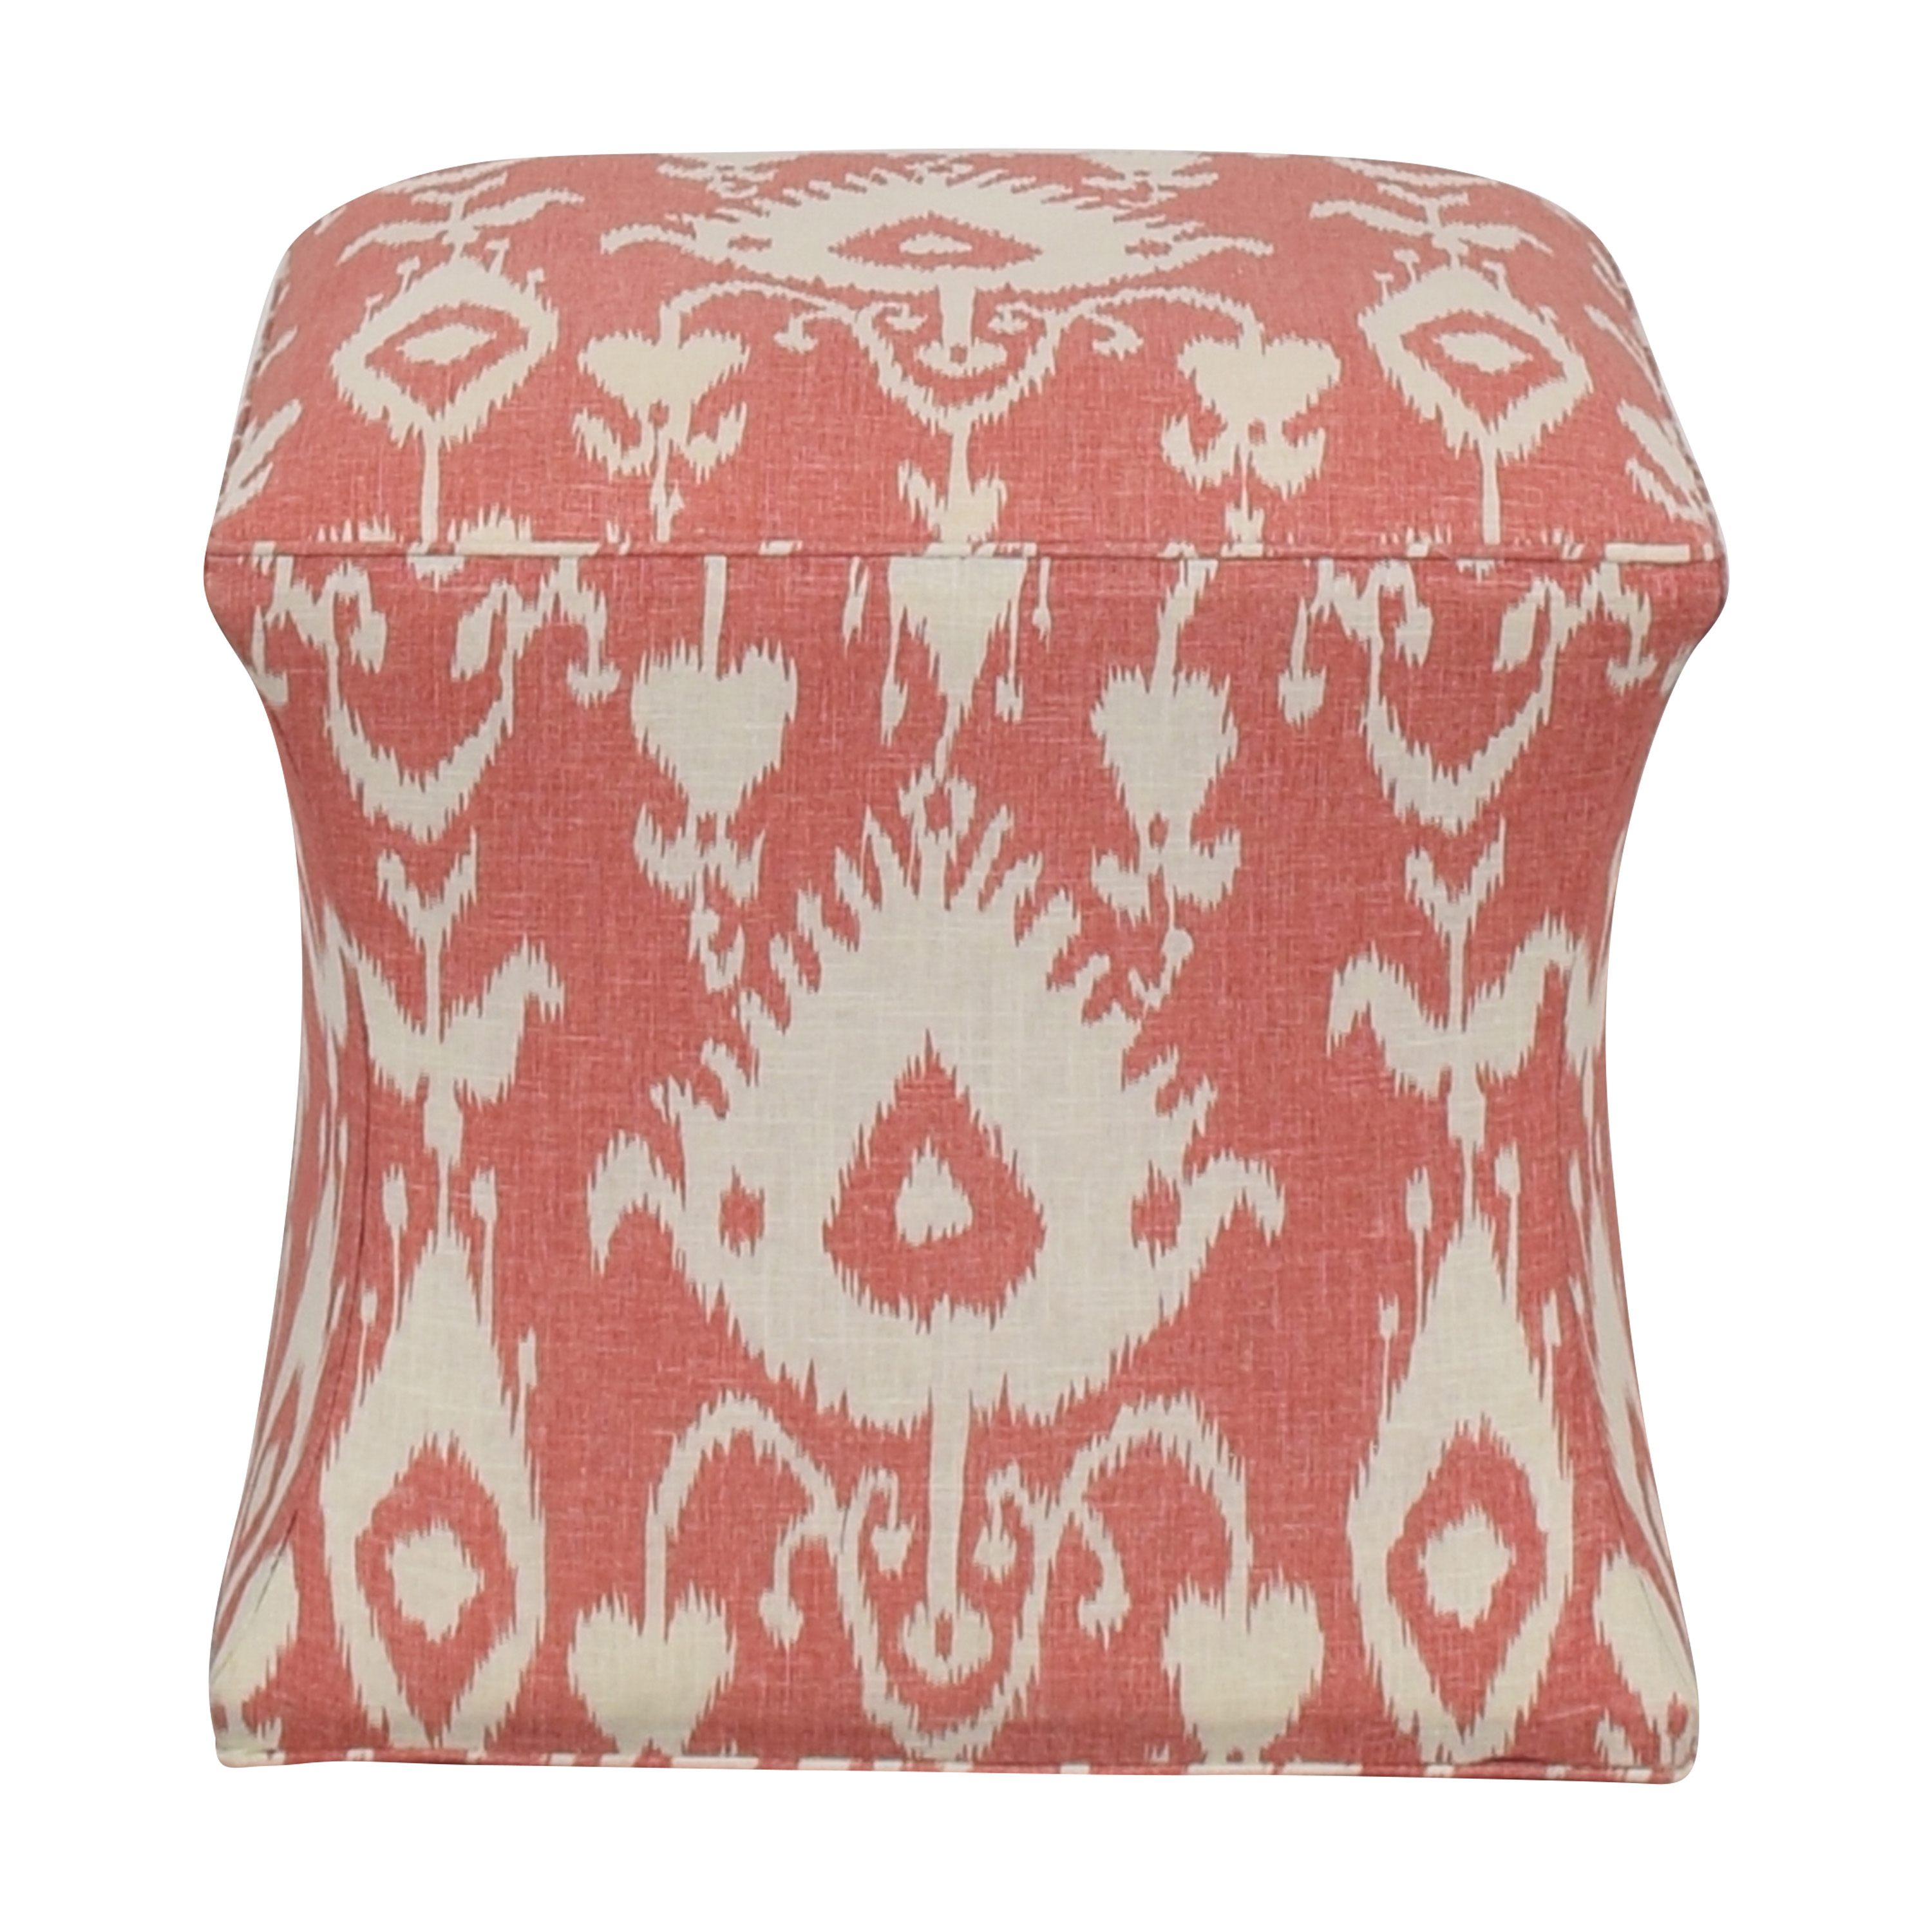 Upholstered Square Ottoman